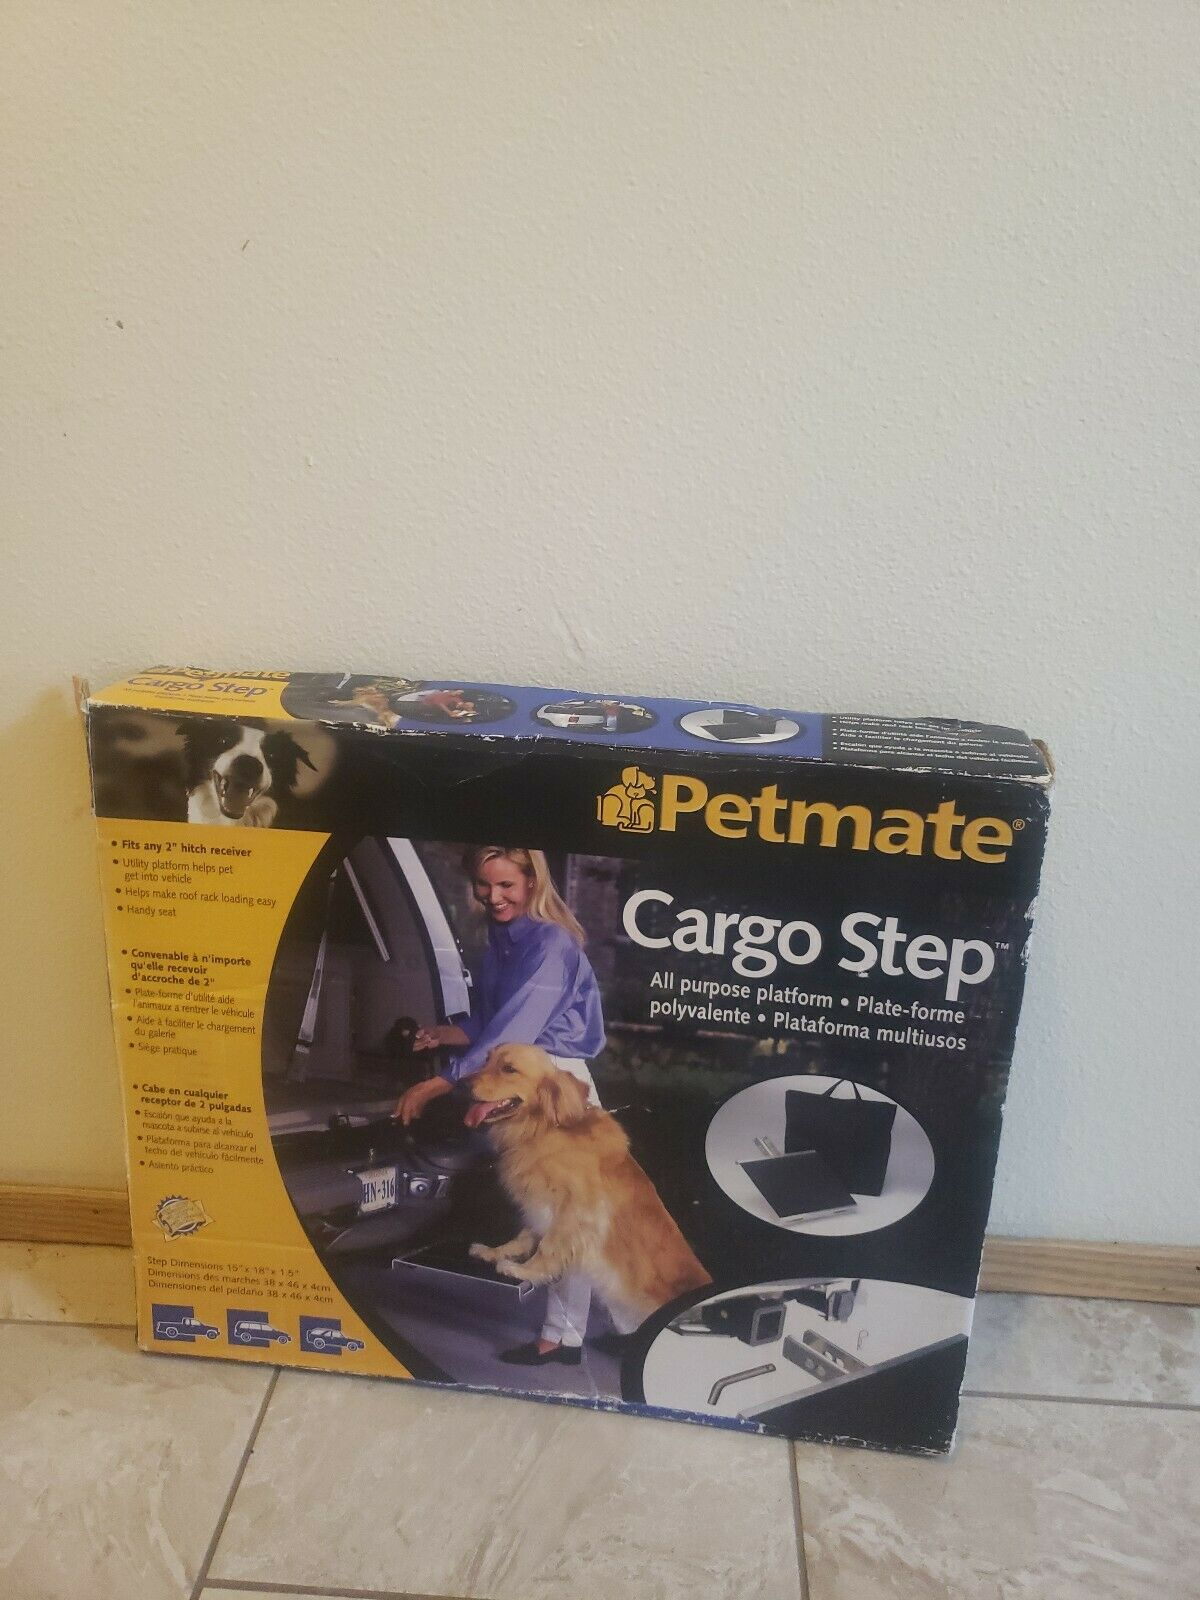 Petmate Cargo Step All Purpose Holds